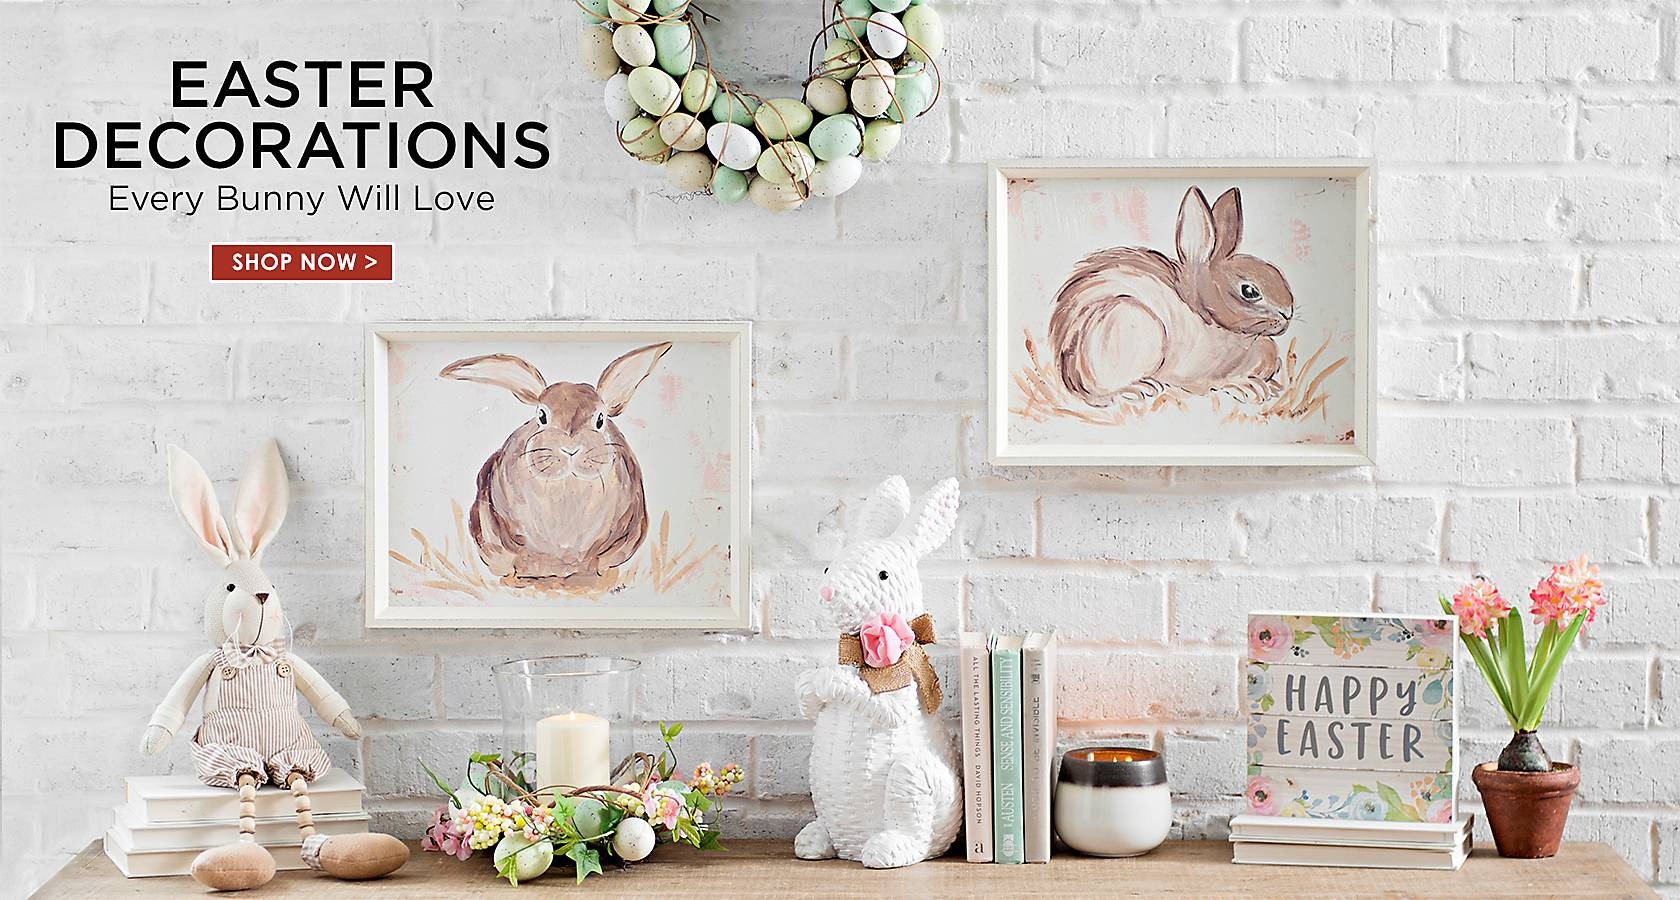 Easter Decorations Every Bunny Will Love - Shop Now